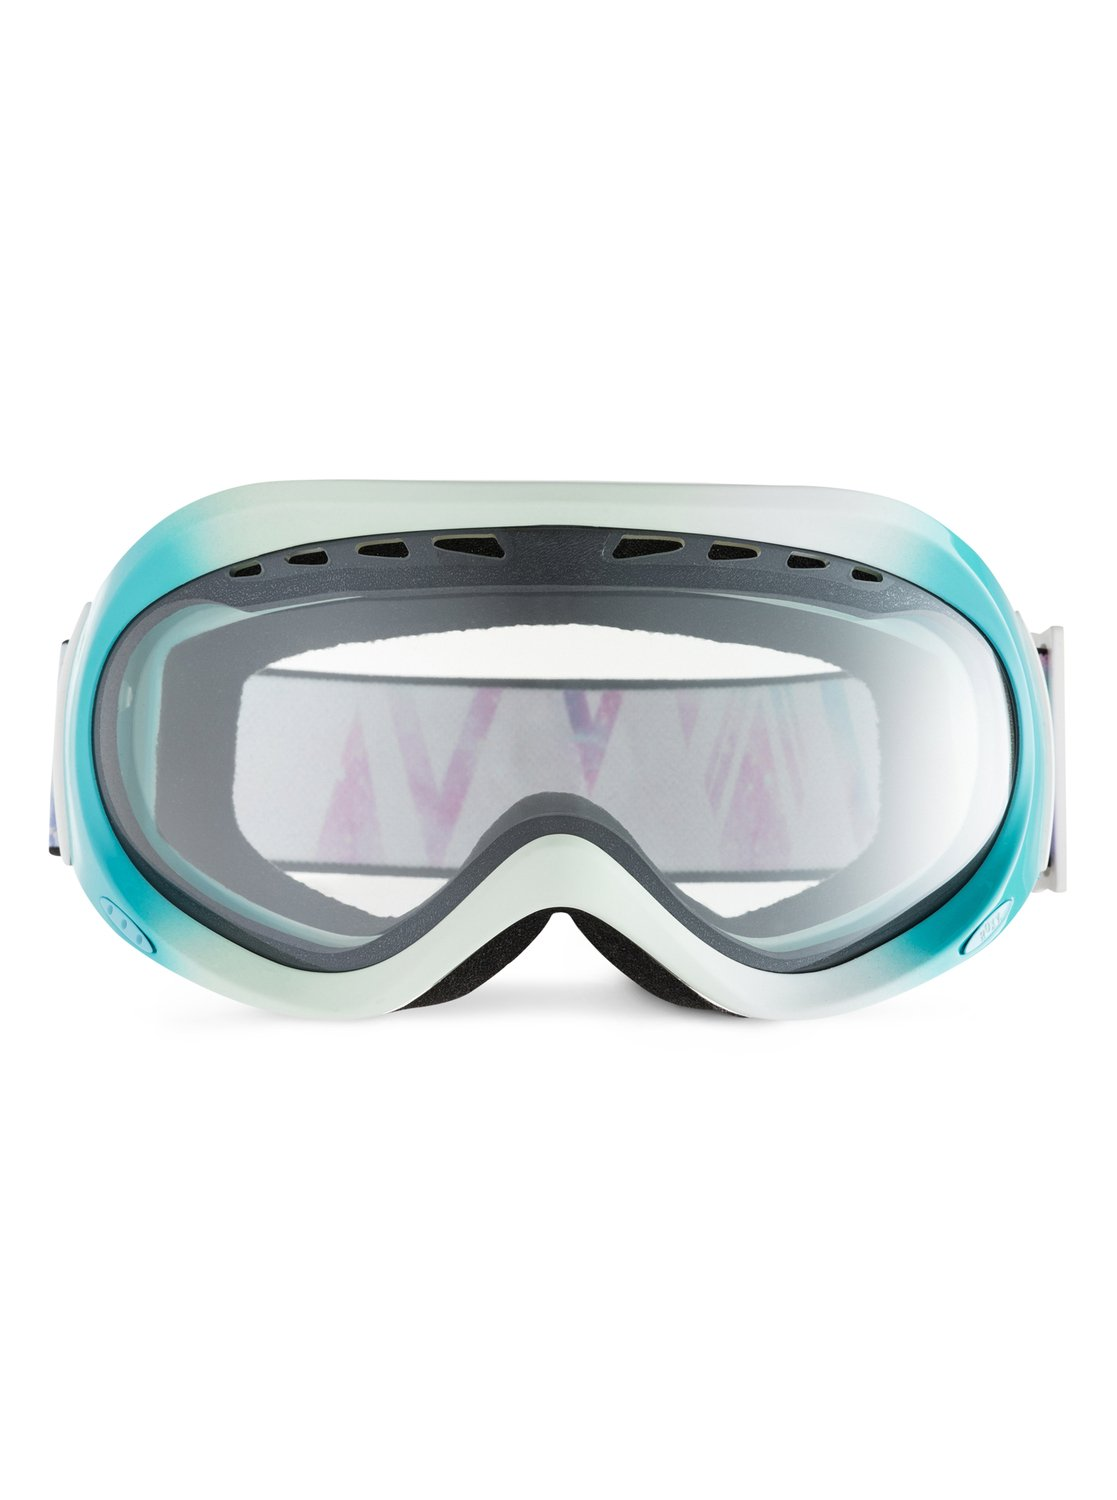 photochromic snowboard goggles 32ob  1 Mist Photochromic